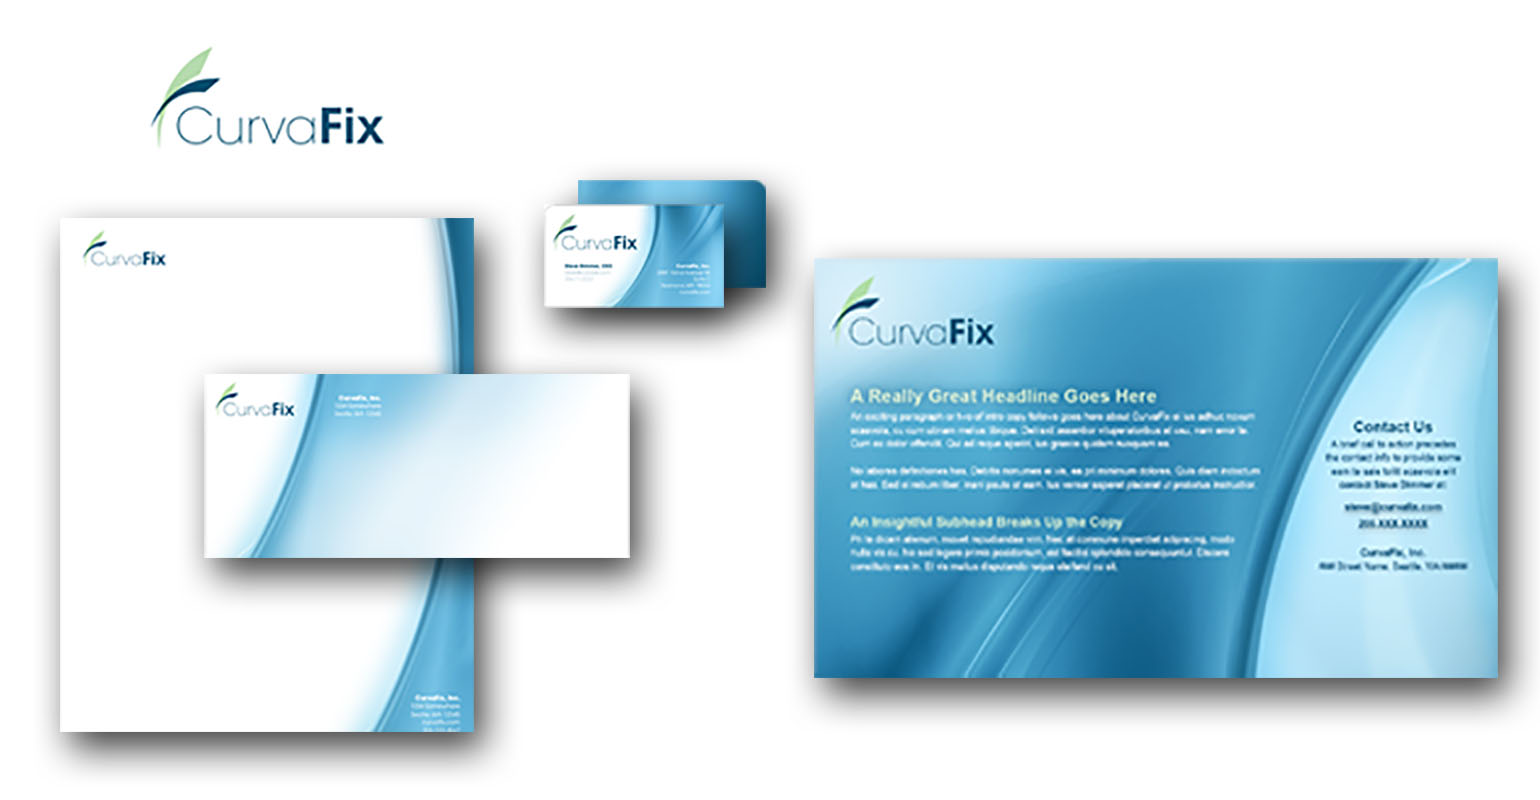 print campaign created for CurvaFix, Inc. by airt group